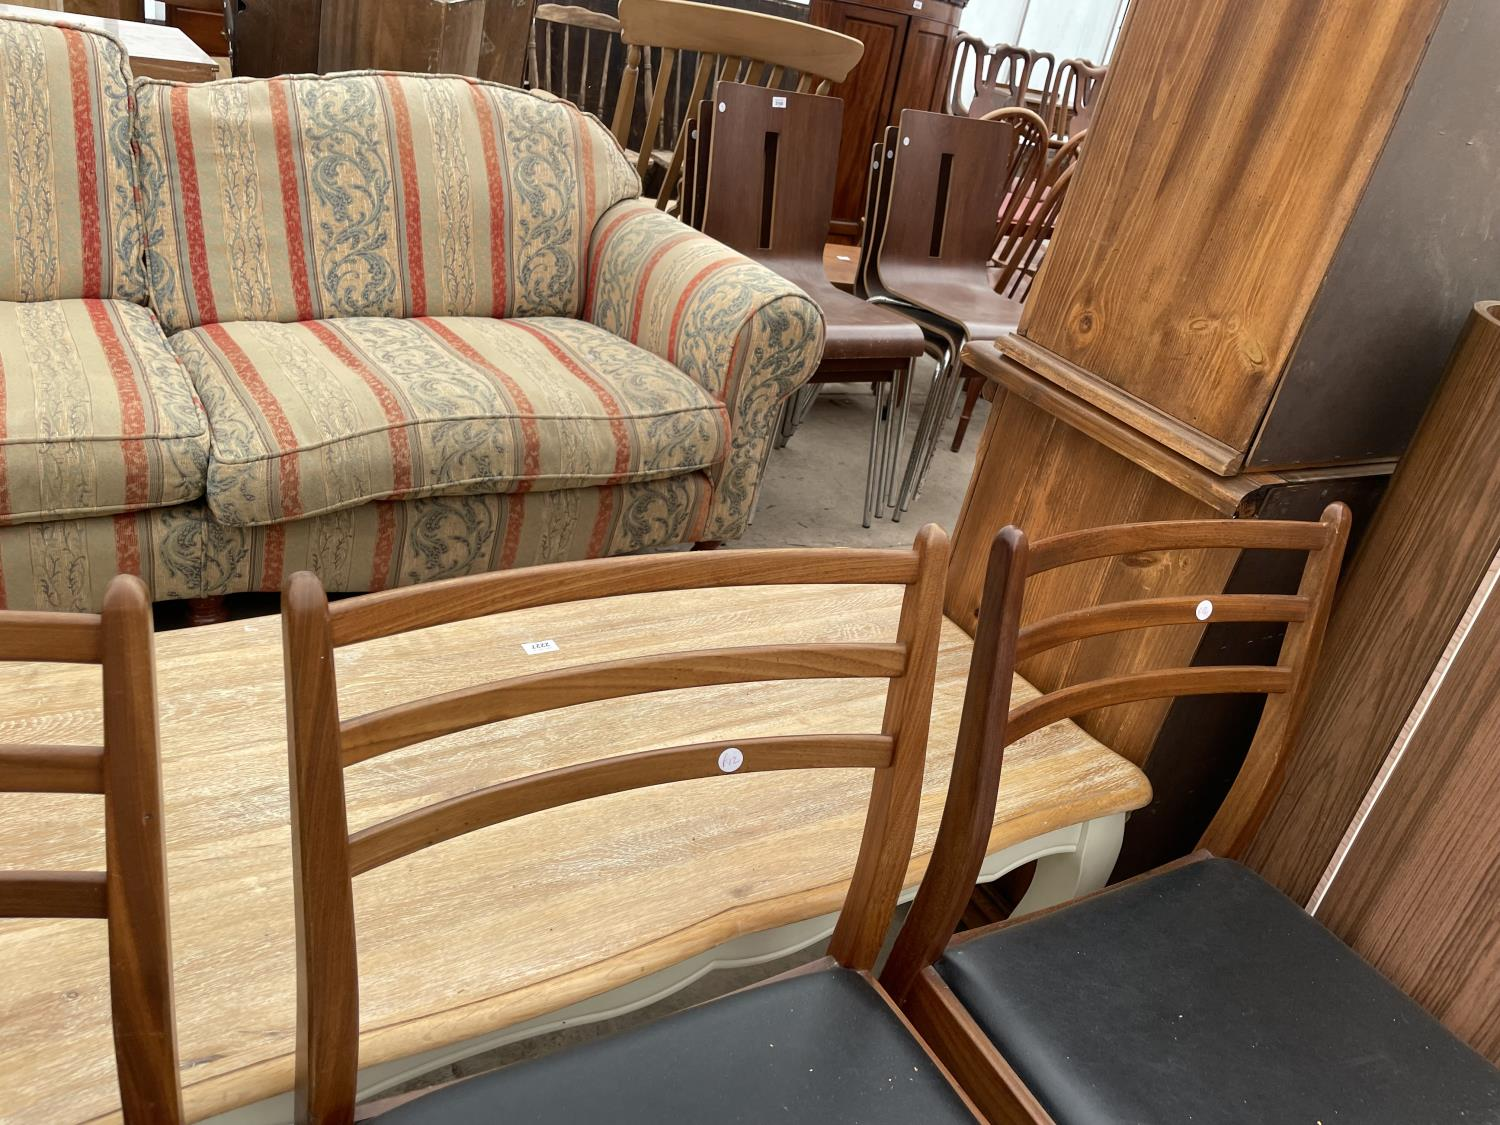 A SET OF FOUR RETRO TEAK G-PLAN DINING CHAIRS - Image 4 of 6